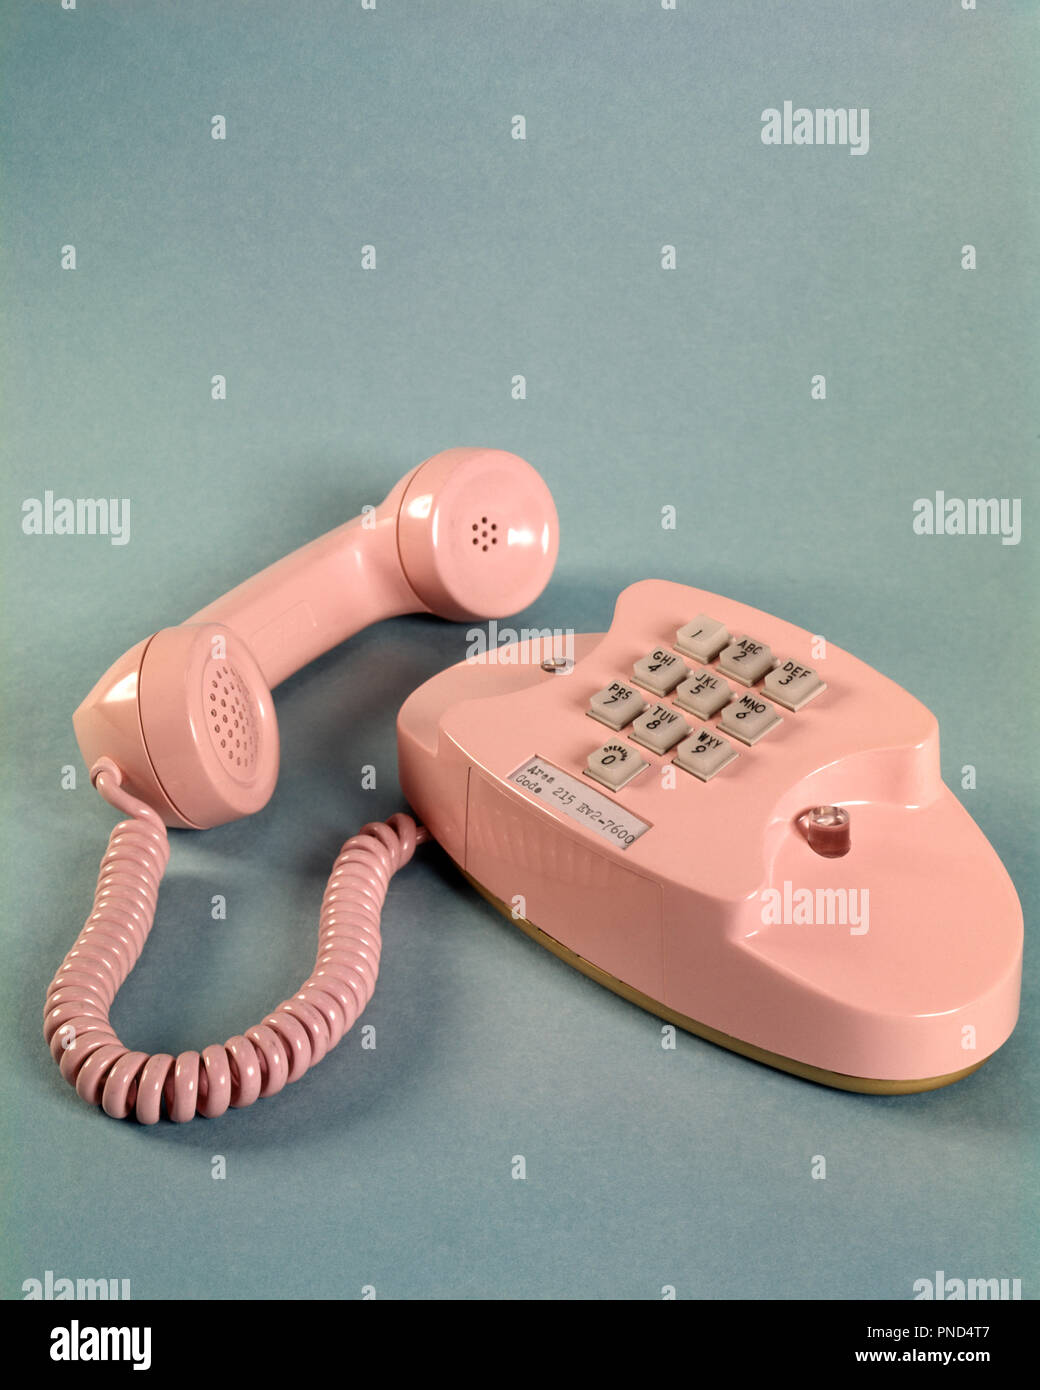 1950s 1960s PINK PRINCESS PHONE RECEIVER OFF THE HOOK INTRODUCED BY AT&T IN 1959  - ks3245 HAR001 HARS PRINCESS - Stock Image